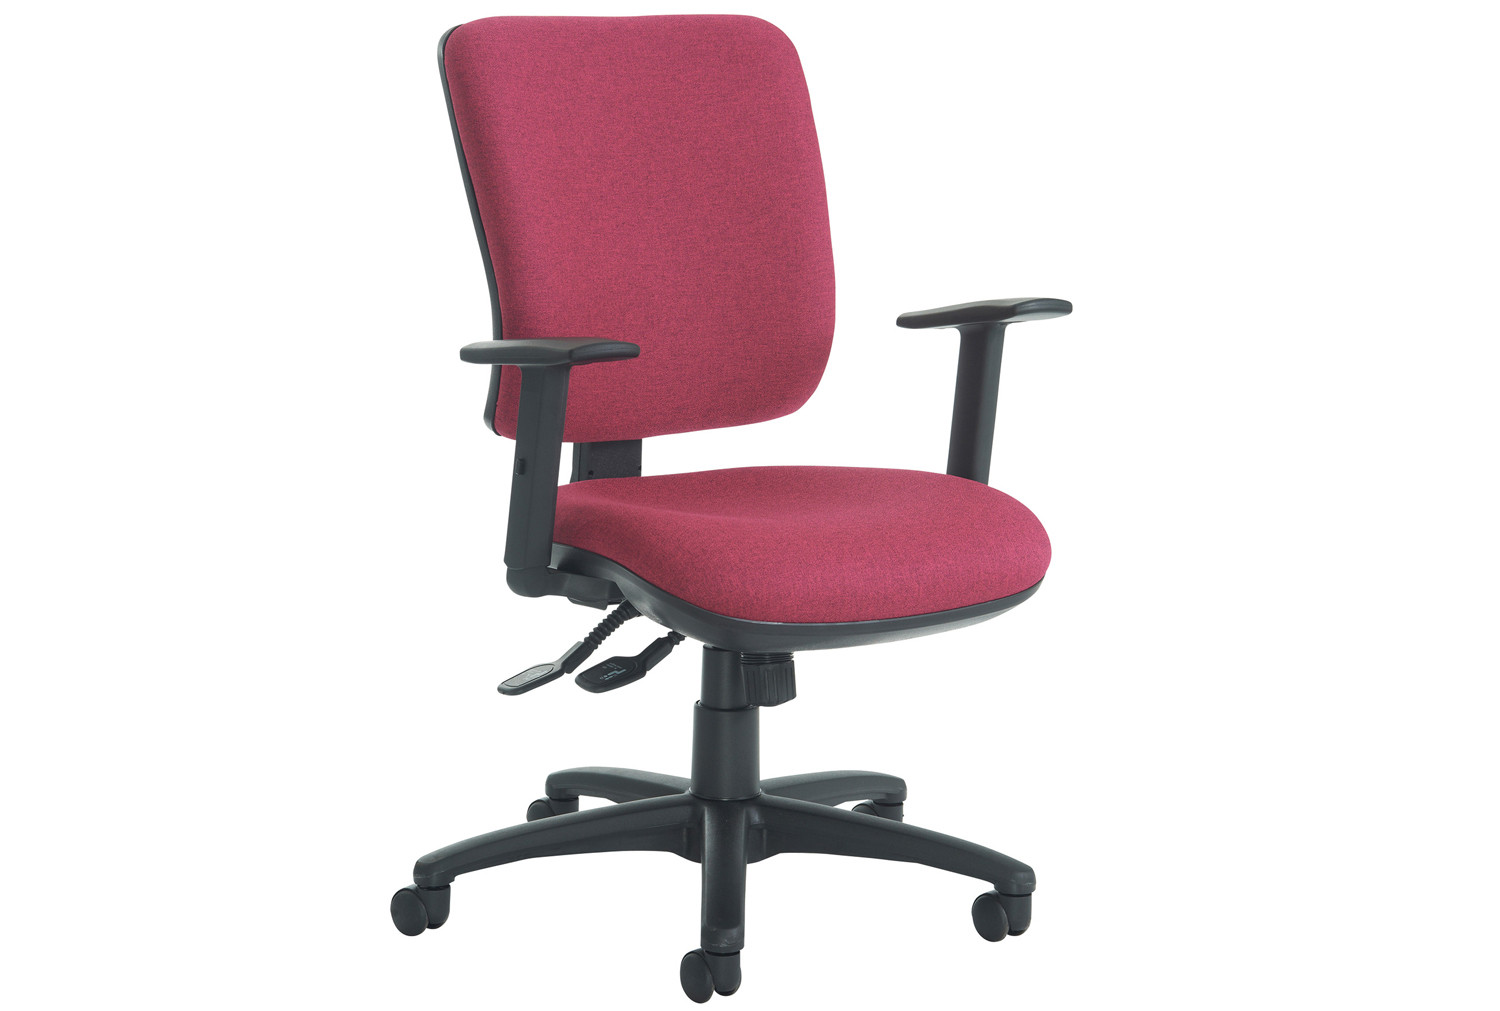 polnoon high back operator chair with height adjustable arms furniture at work. Black Bedroom Furniture Sets. Home Design Ideas